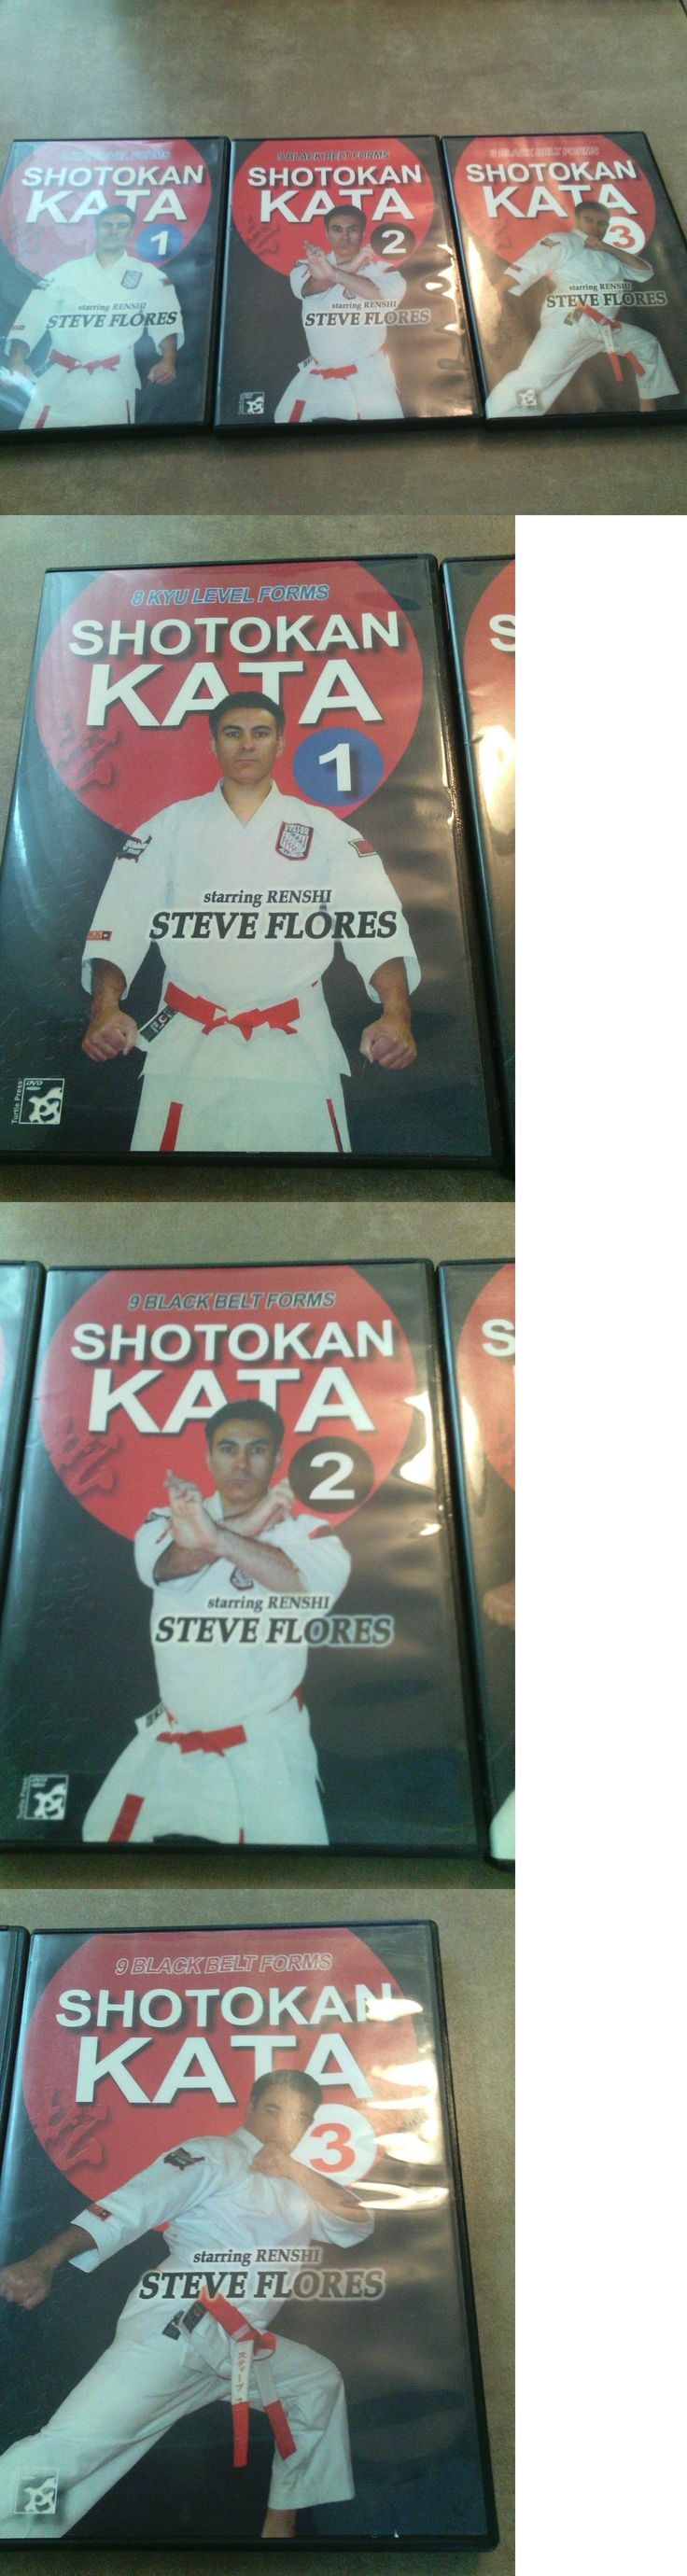 DVDs Videos and Books 73991: Shotokan Karate Dvd Set White To Black Belt Kata 3 Dvds Rare Nice Collector Set -> BUY IT NOW ONLY: $109 on eBay!